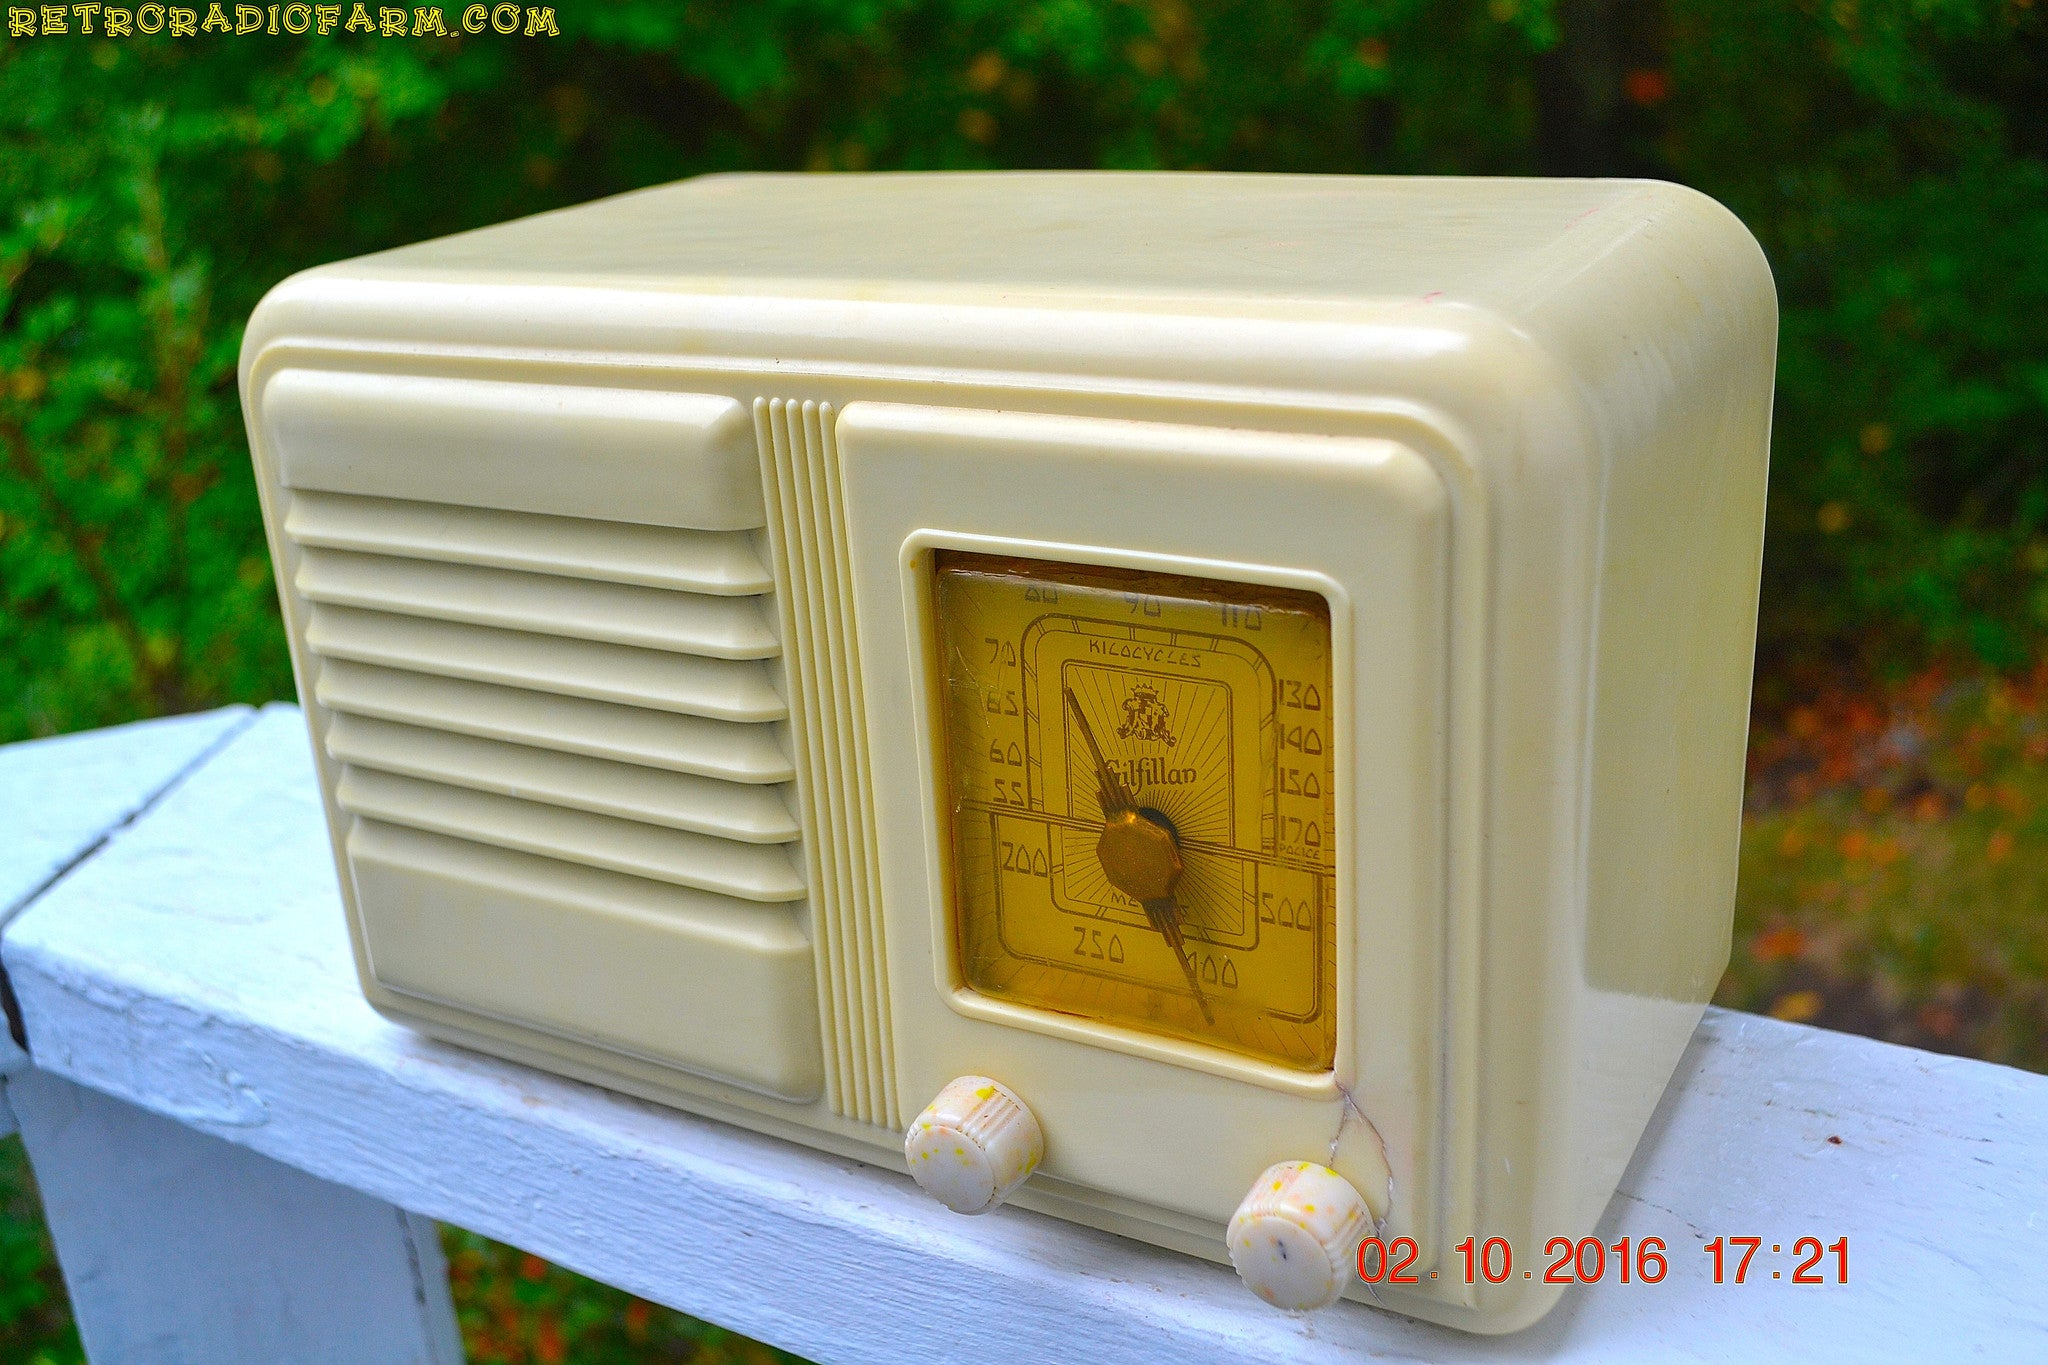 SOLD! - Oct 3, 2016 - BEAUTIFUL Art Deco Plaskon 1939-1941 Gilfillan 5B8 AM Tube Radio Totally Restored!